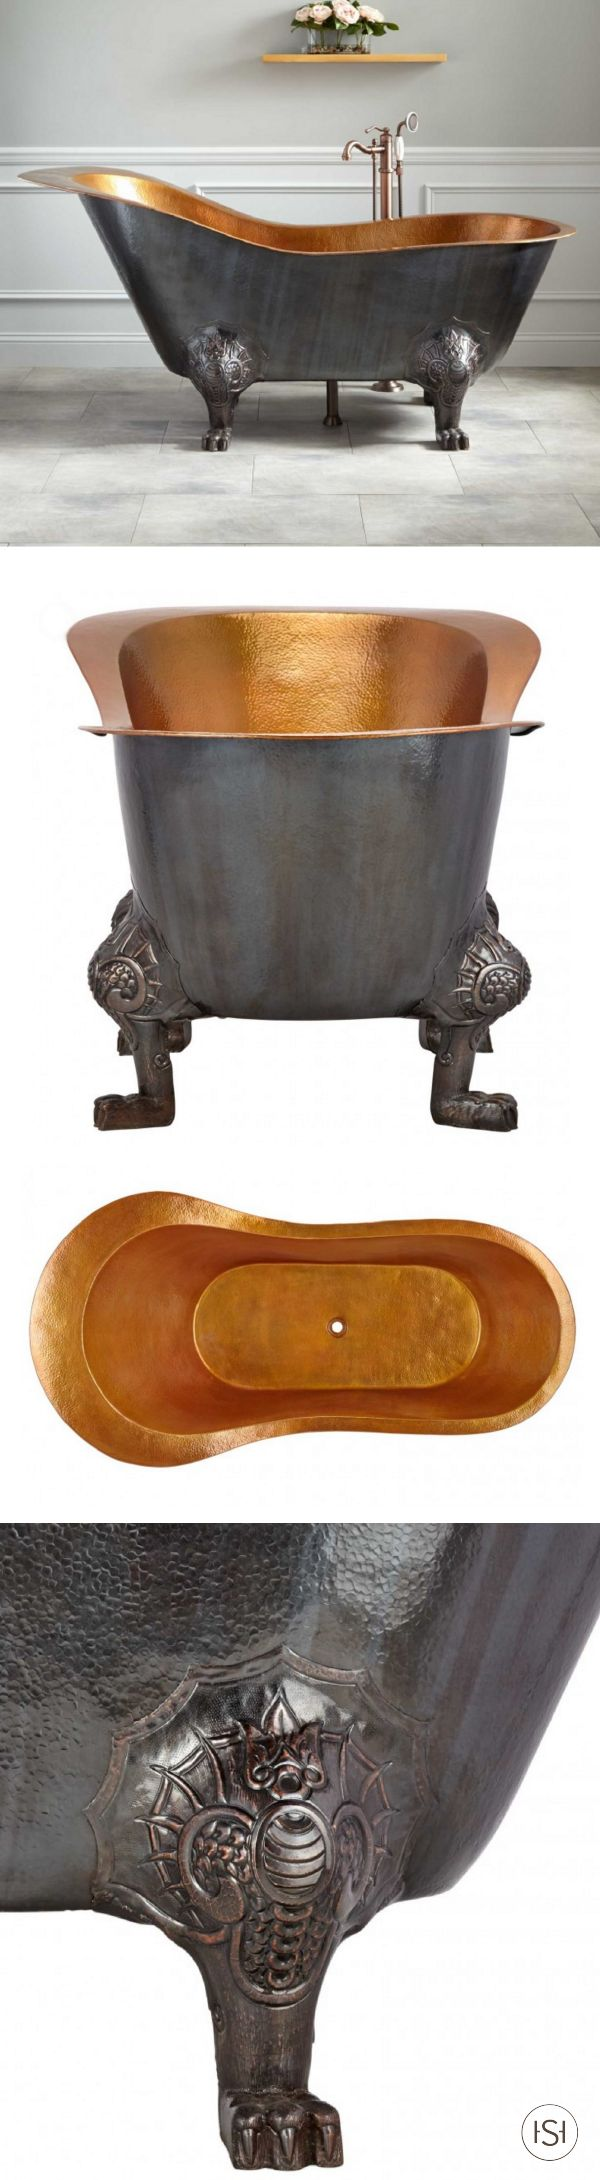 """This 72"""" McQuire Hammered Copper Slipper Clawfoot Tub with Bright Copper Interior looks like it's meant for royalty. Thankfully, you can add it to your master bathroom and relax elegantly any night of the week!"""